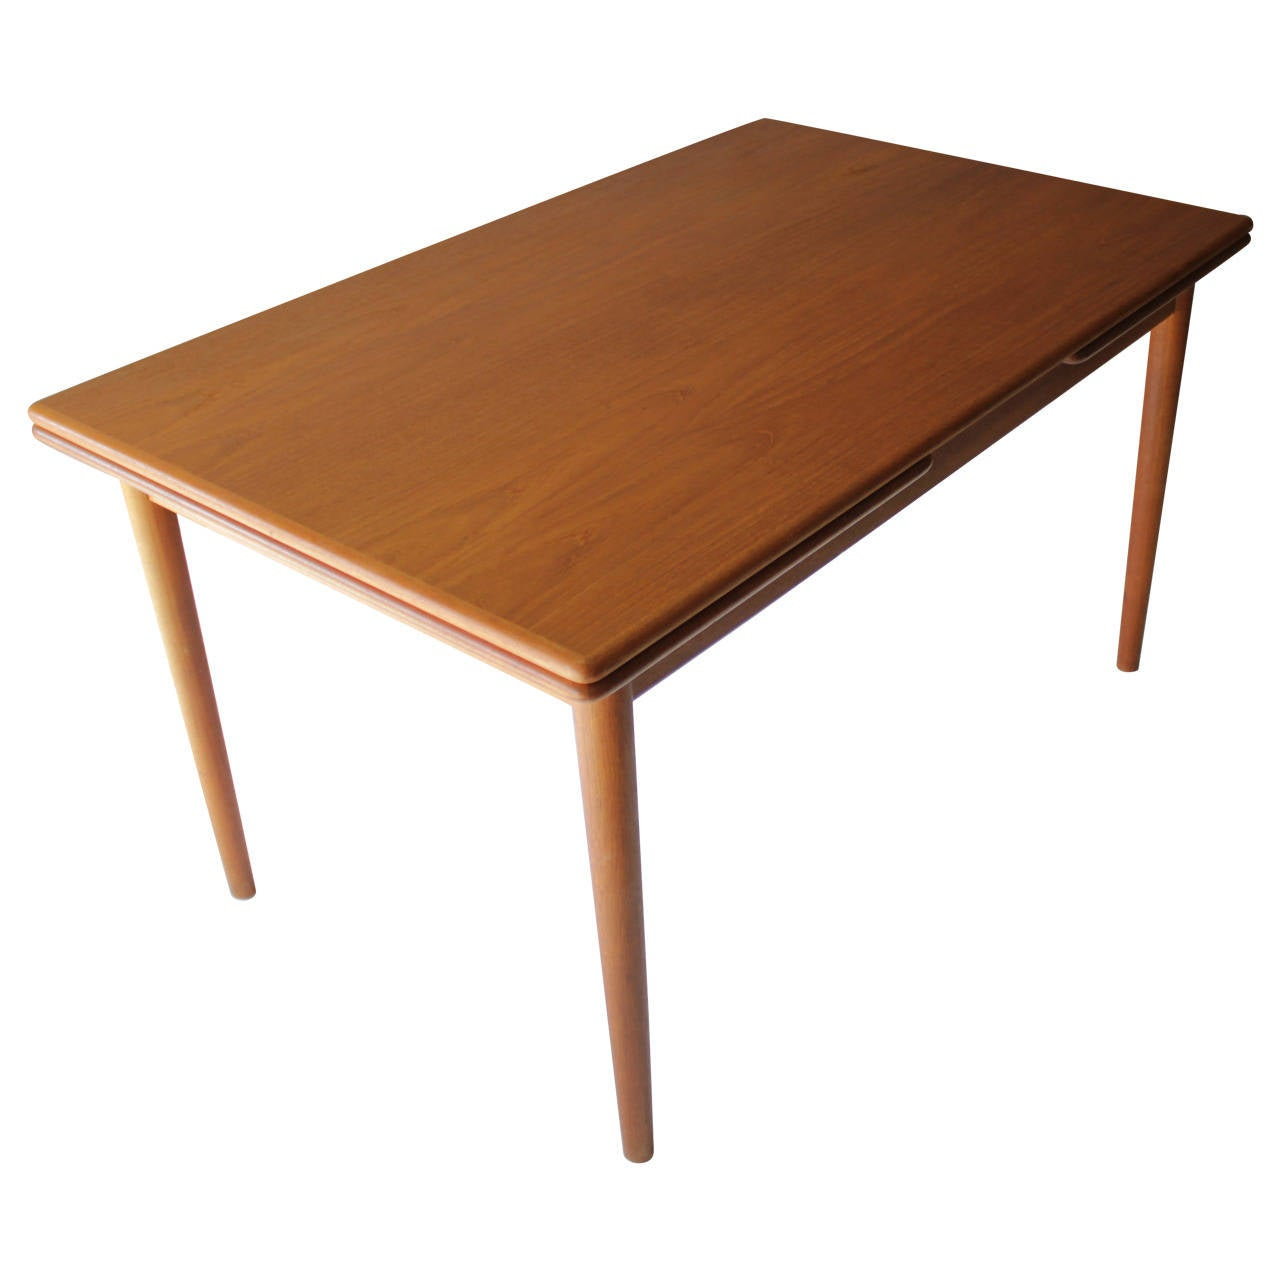 Danish teak dining room table with two leaves for sale at for Dining room table 2